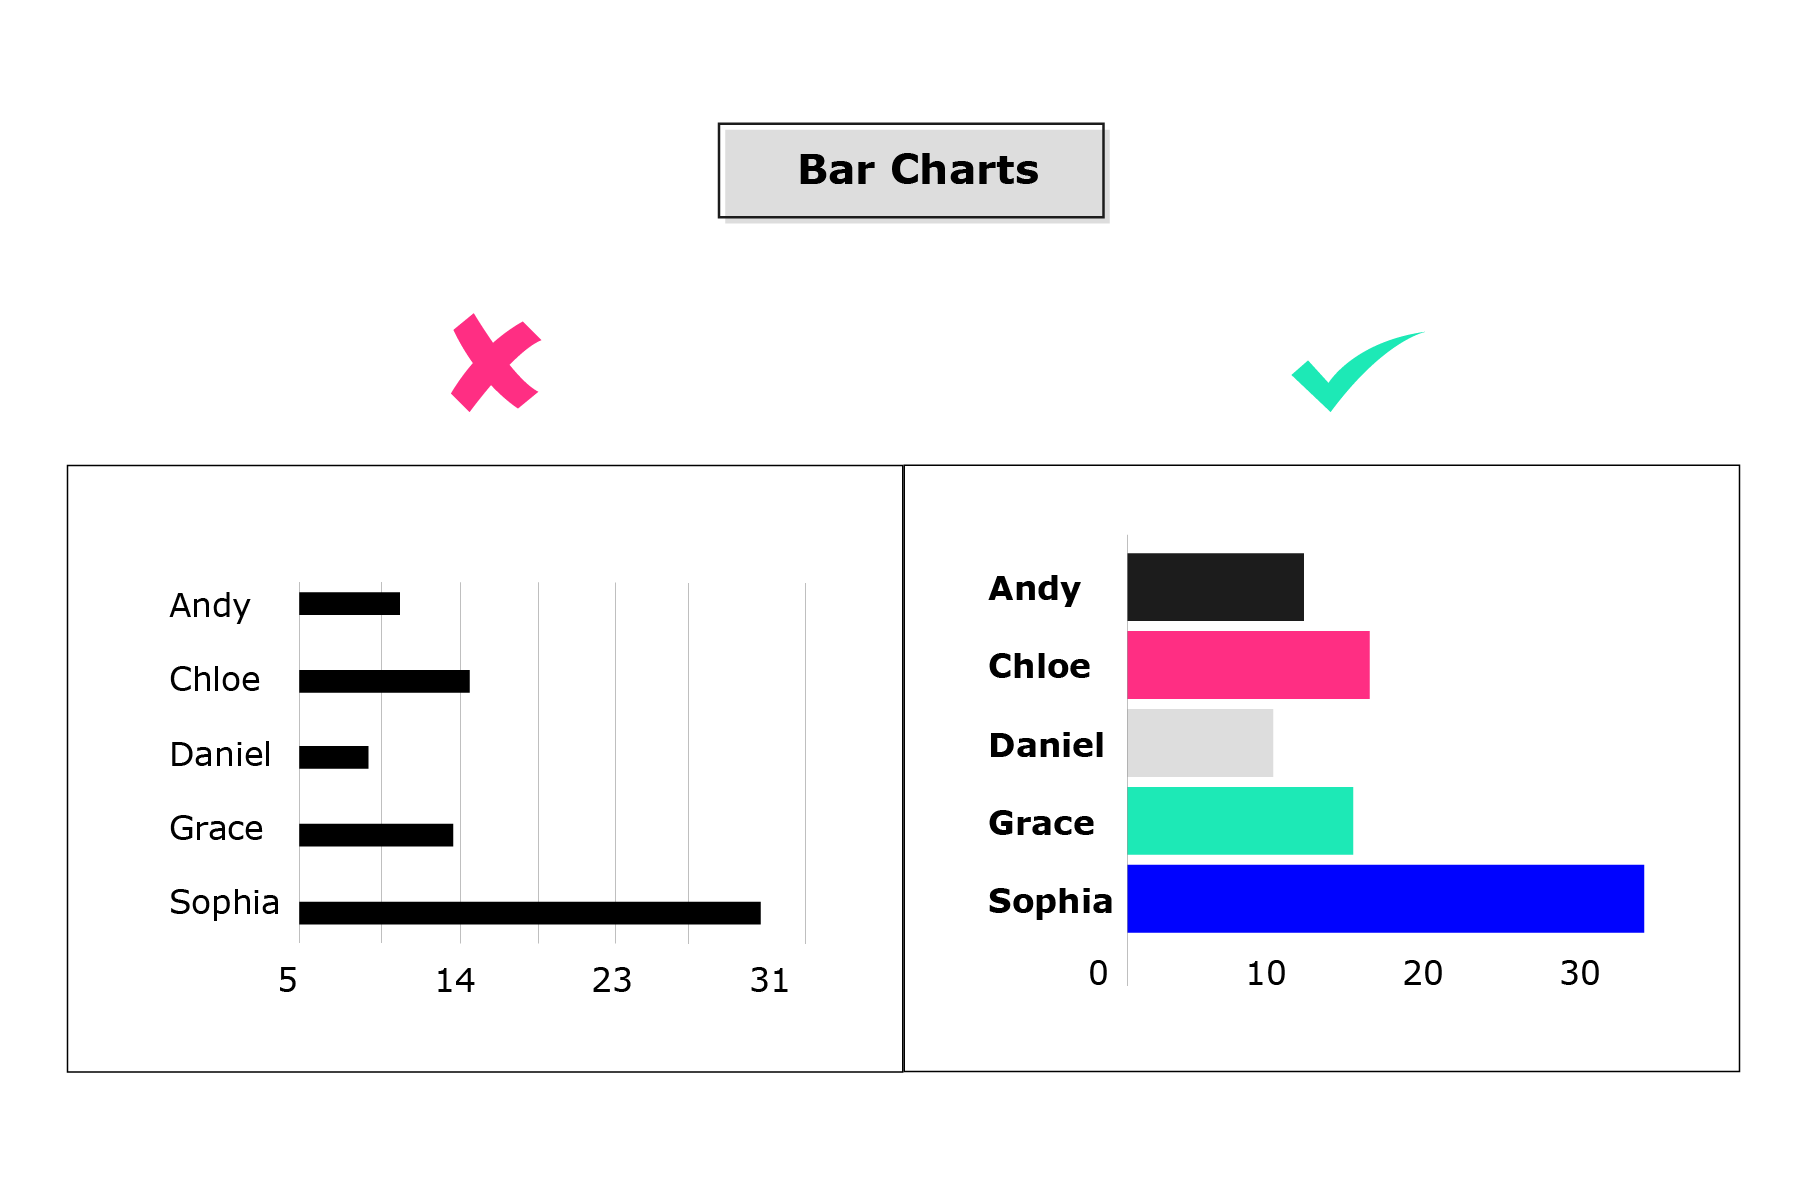 Example of a correct and incorrect bar chart. The incorrect version has small bar and a lot of extra space between them. The correct version has large, more visible bars.